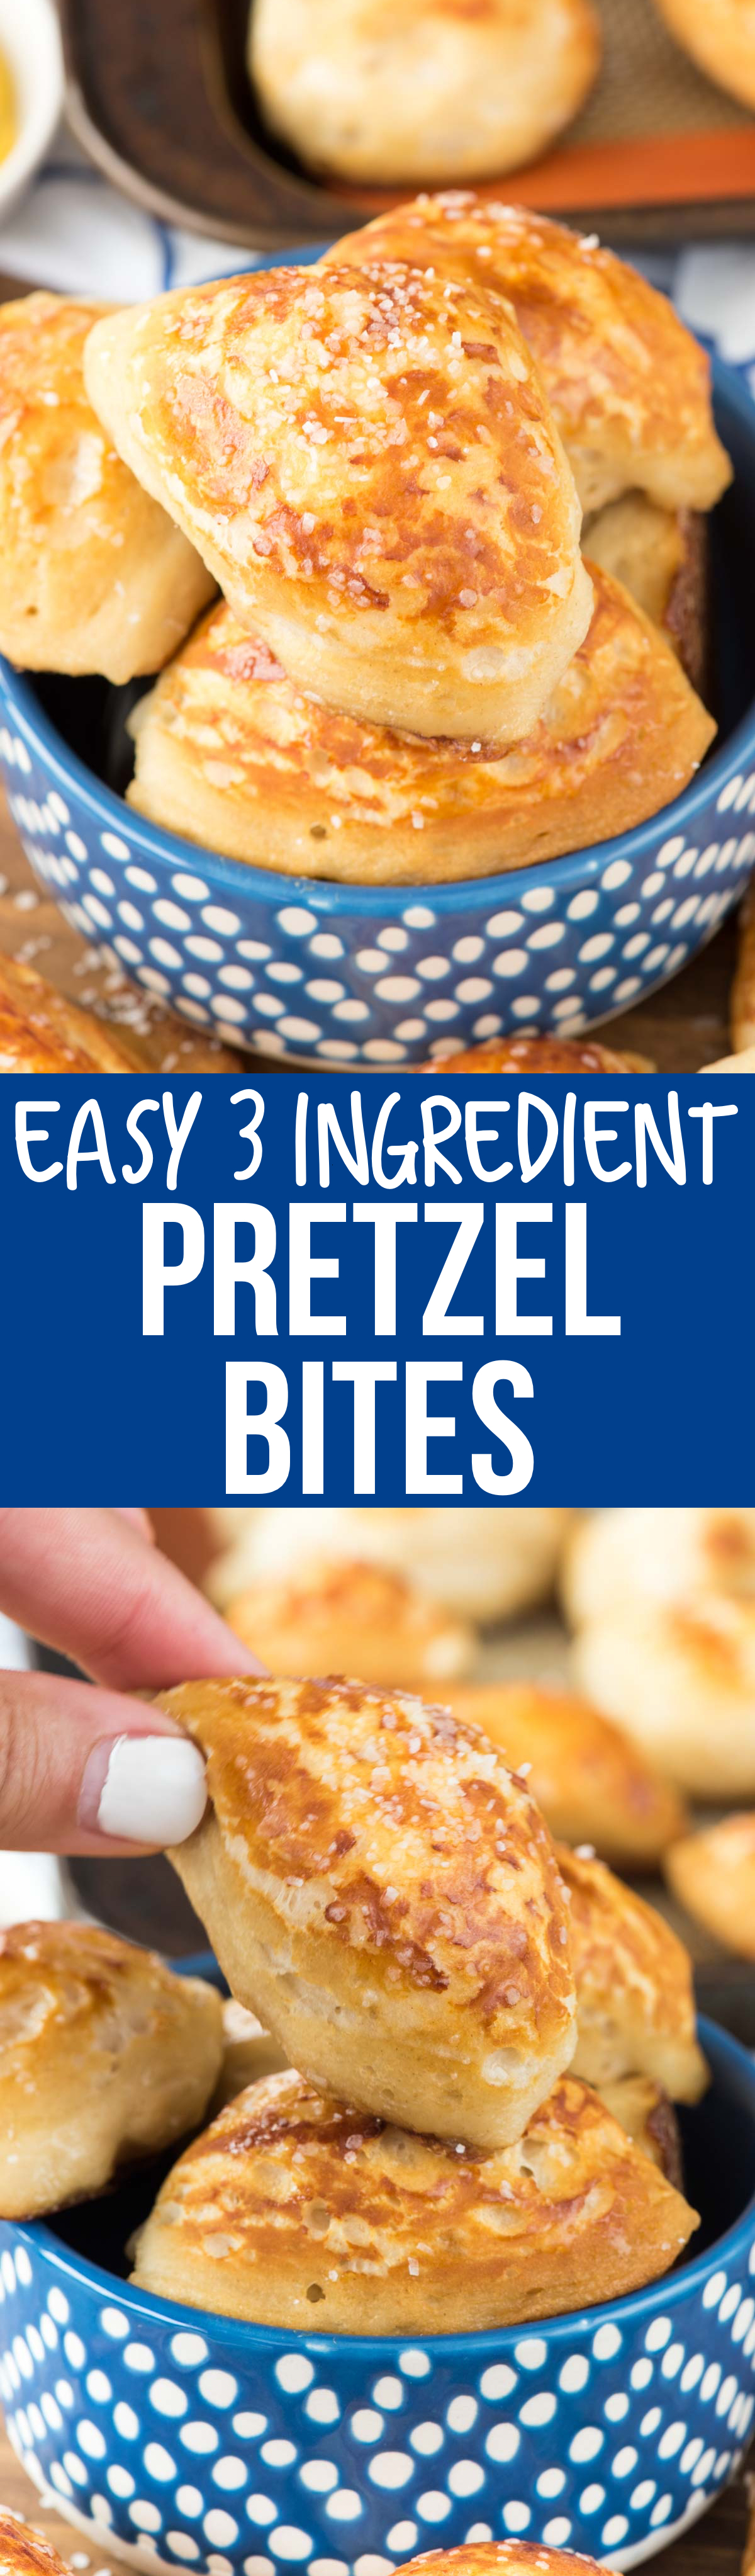 These Easy Soft Pretzel Bites recipe has only 2 basic ingredients and are done in under 30 minutes! They're delicious with salt!